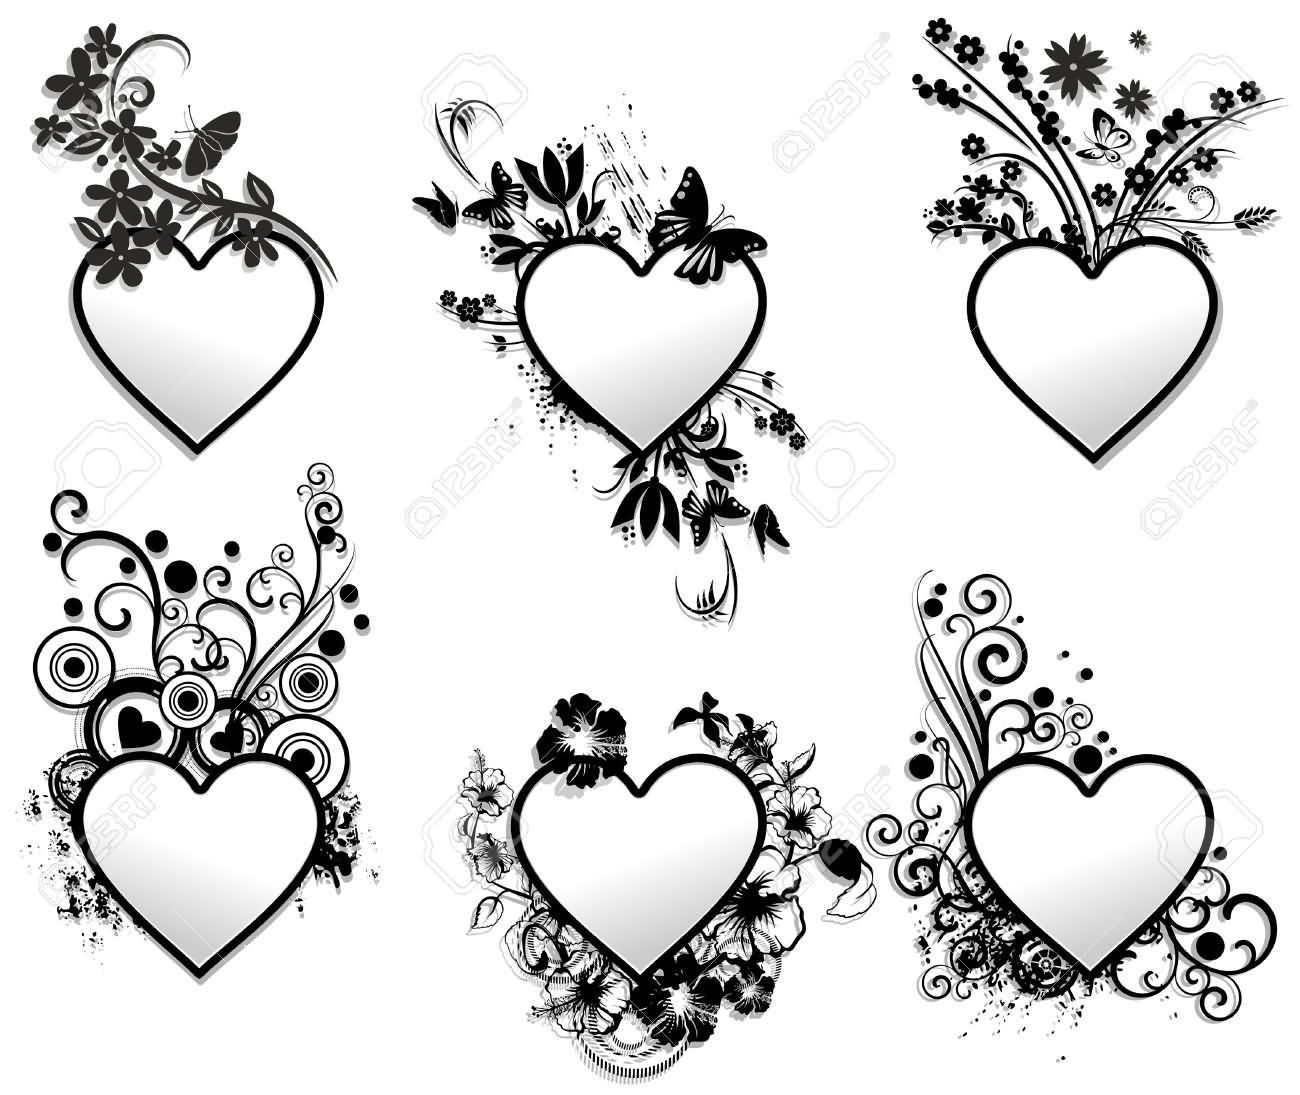 Illustration of Love Hearts Tattoo Ornamental Frames Set